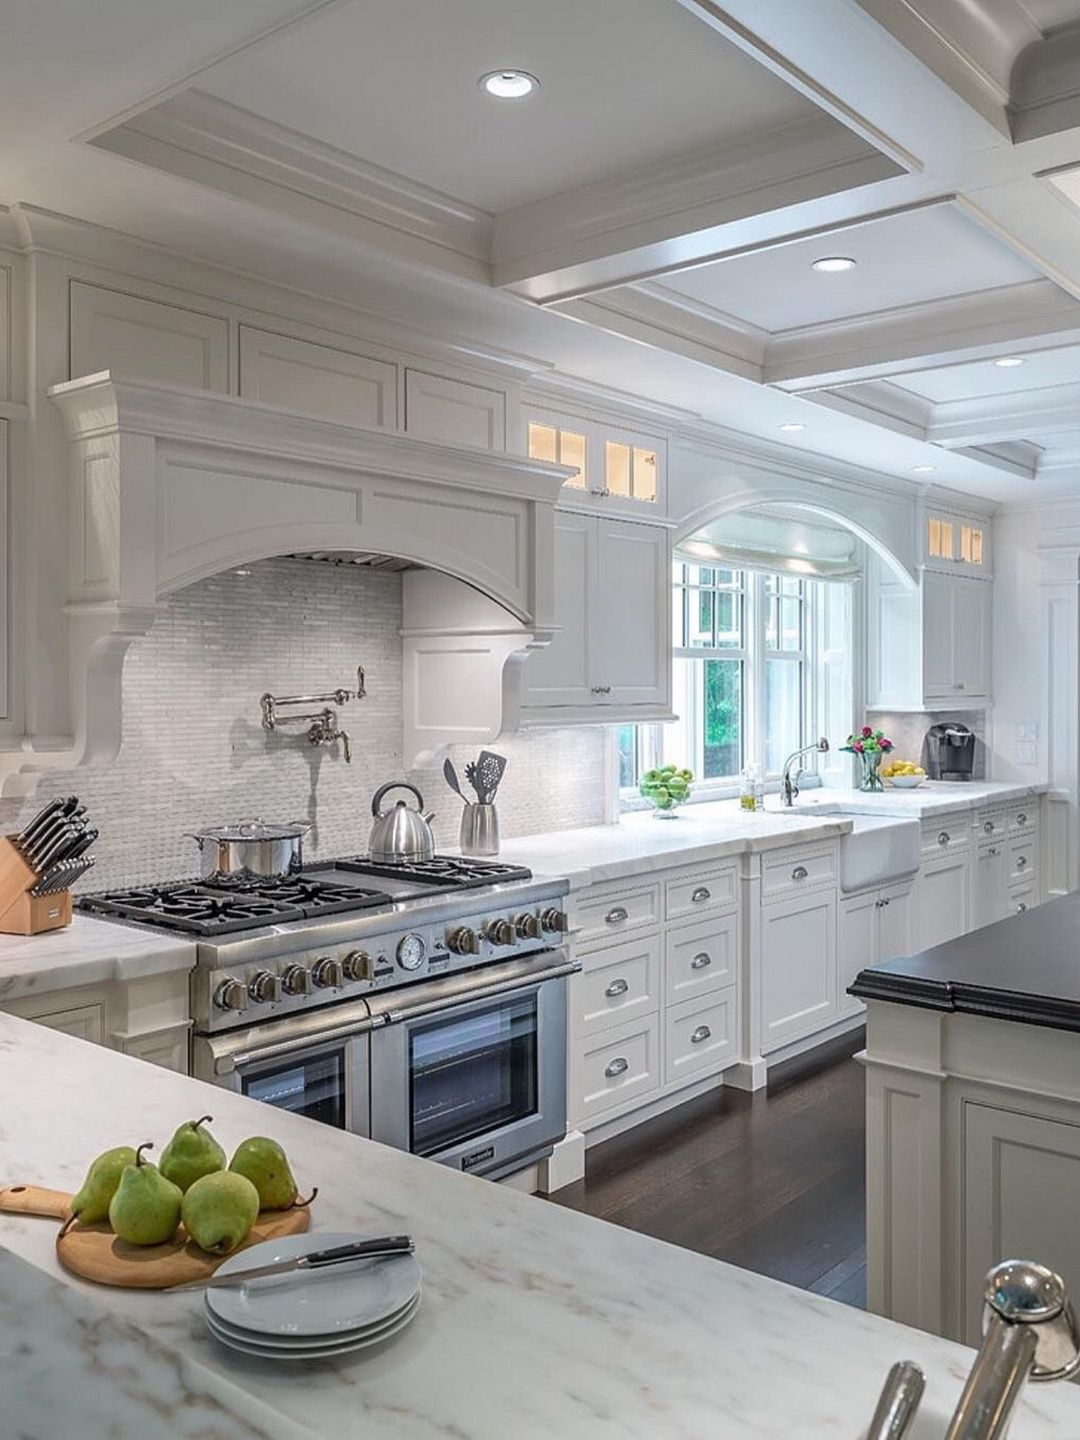 Hardwood Floors And Spectacular Coffered Ceiling Kitchen Kuche